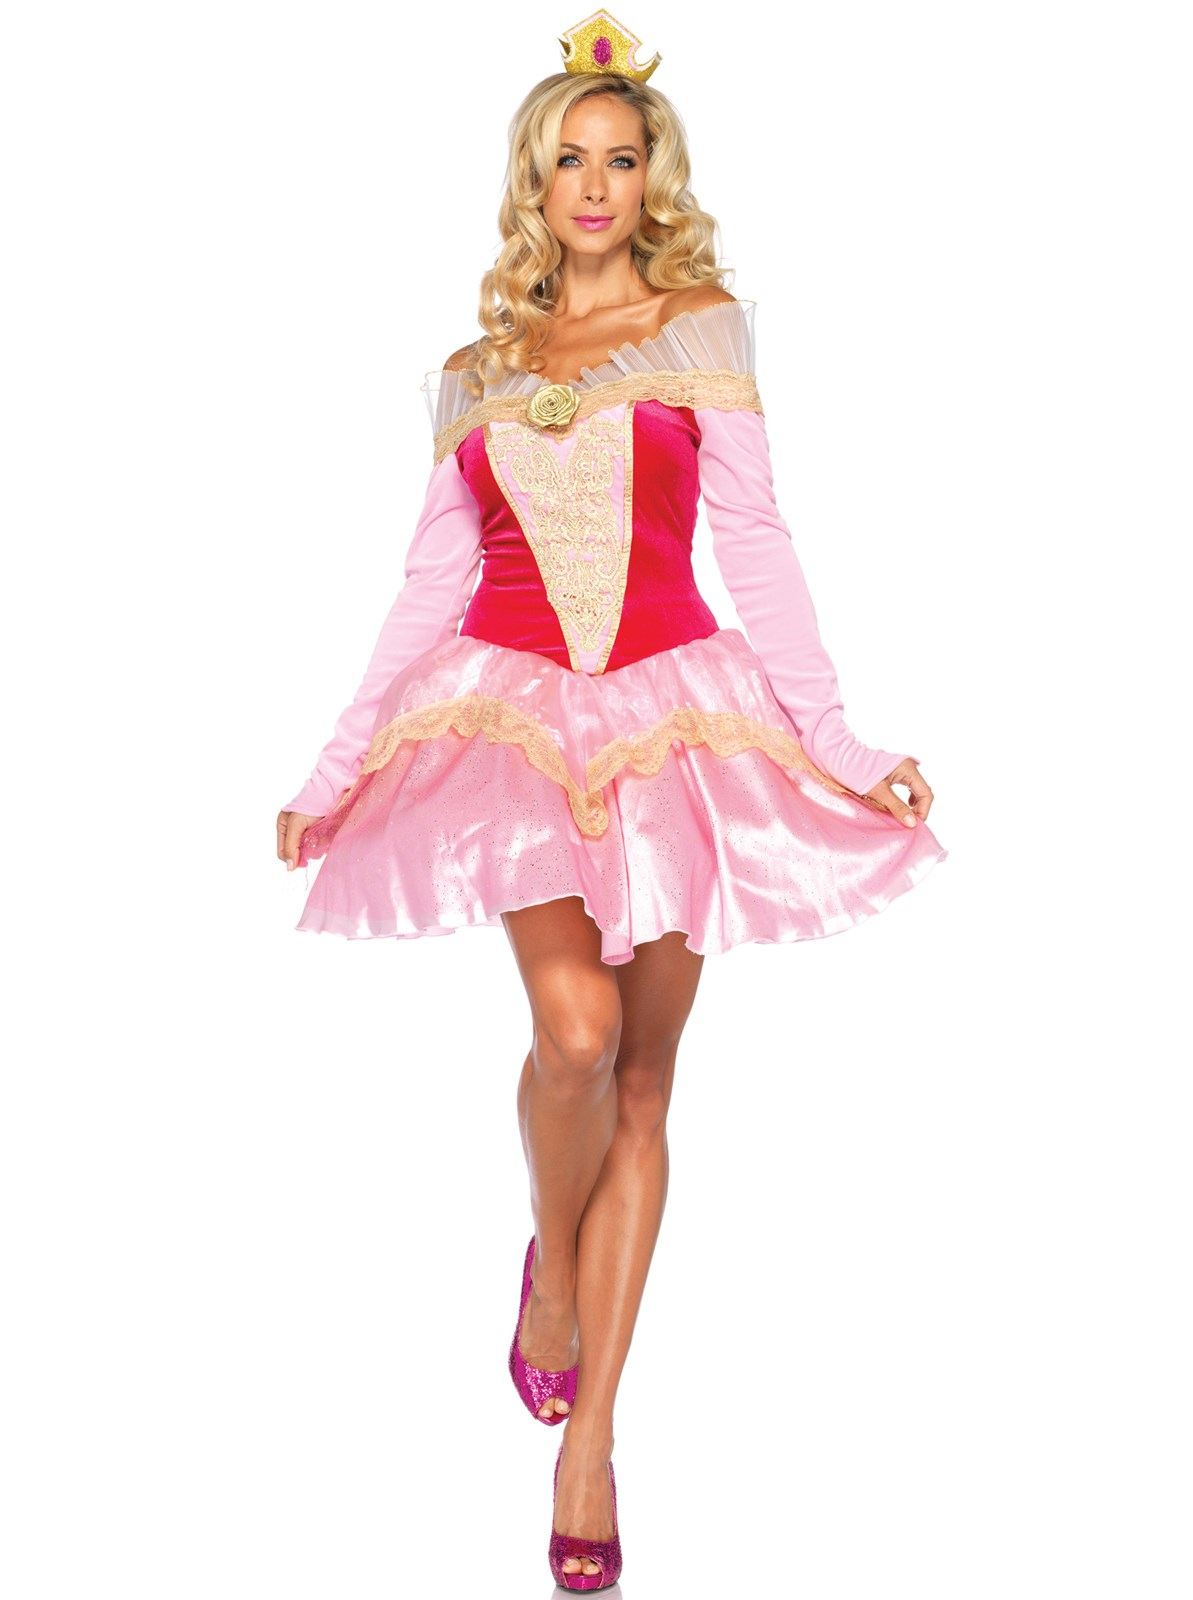 Disney Princesses Princess Aurora Adult Costume Small (4-6)